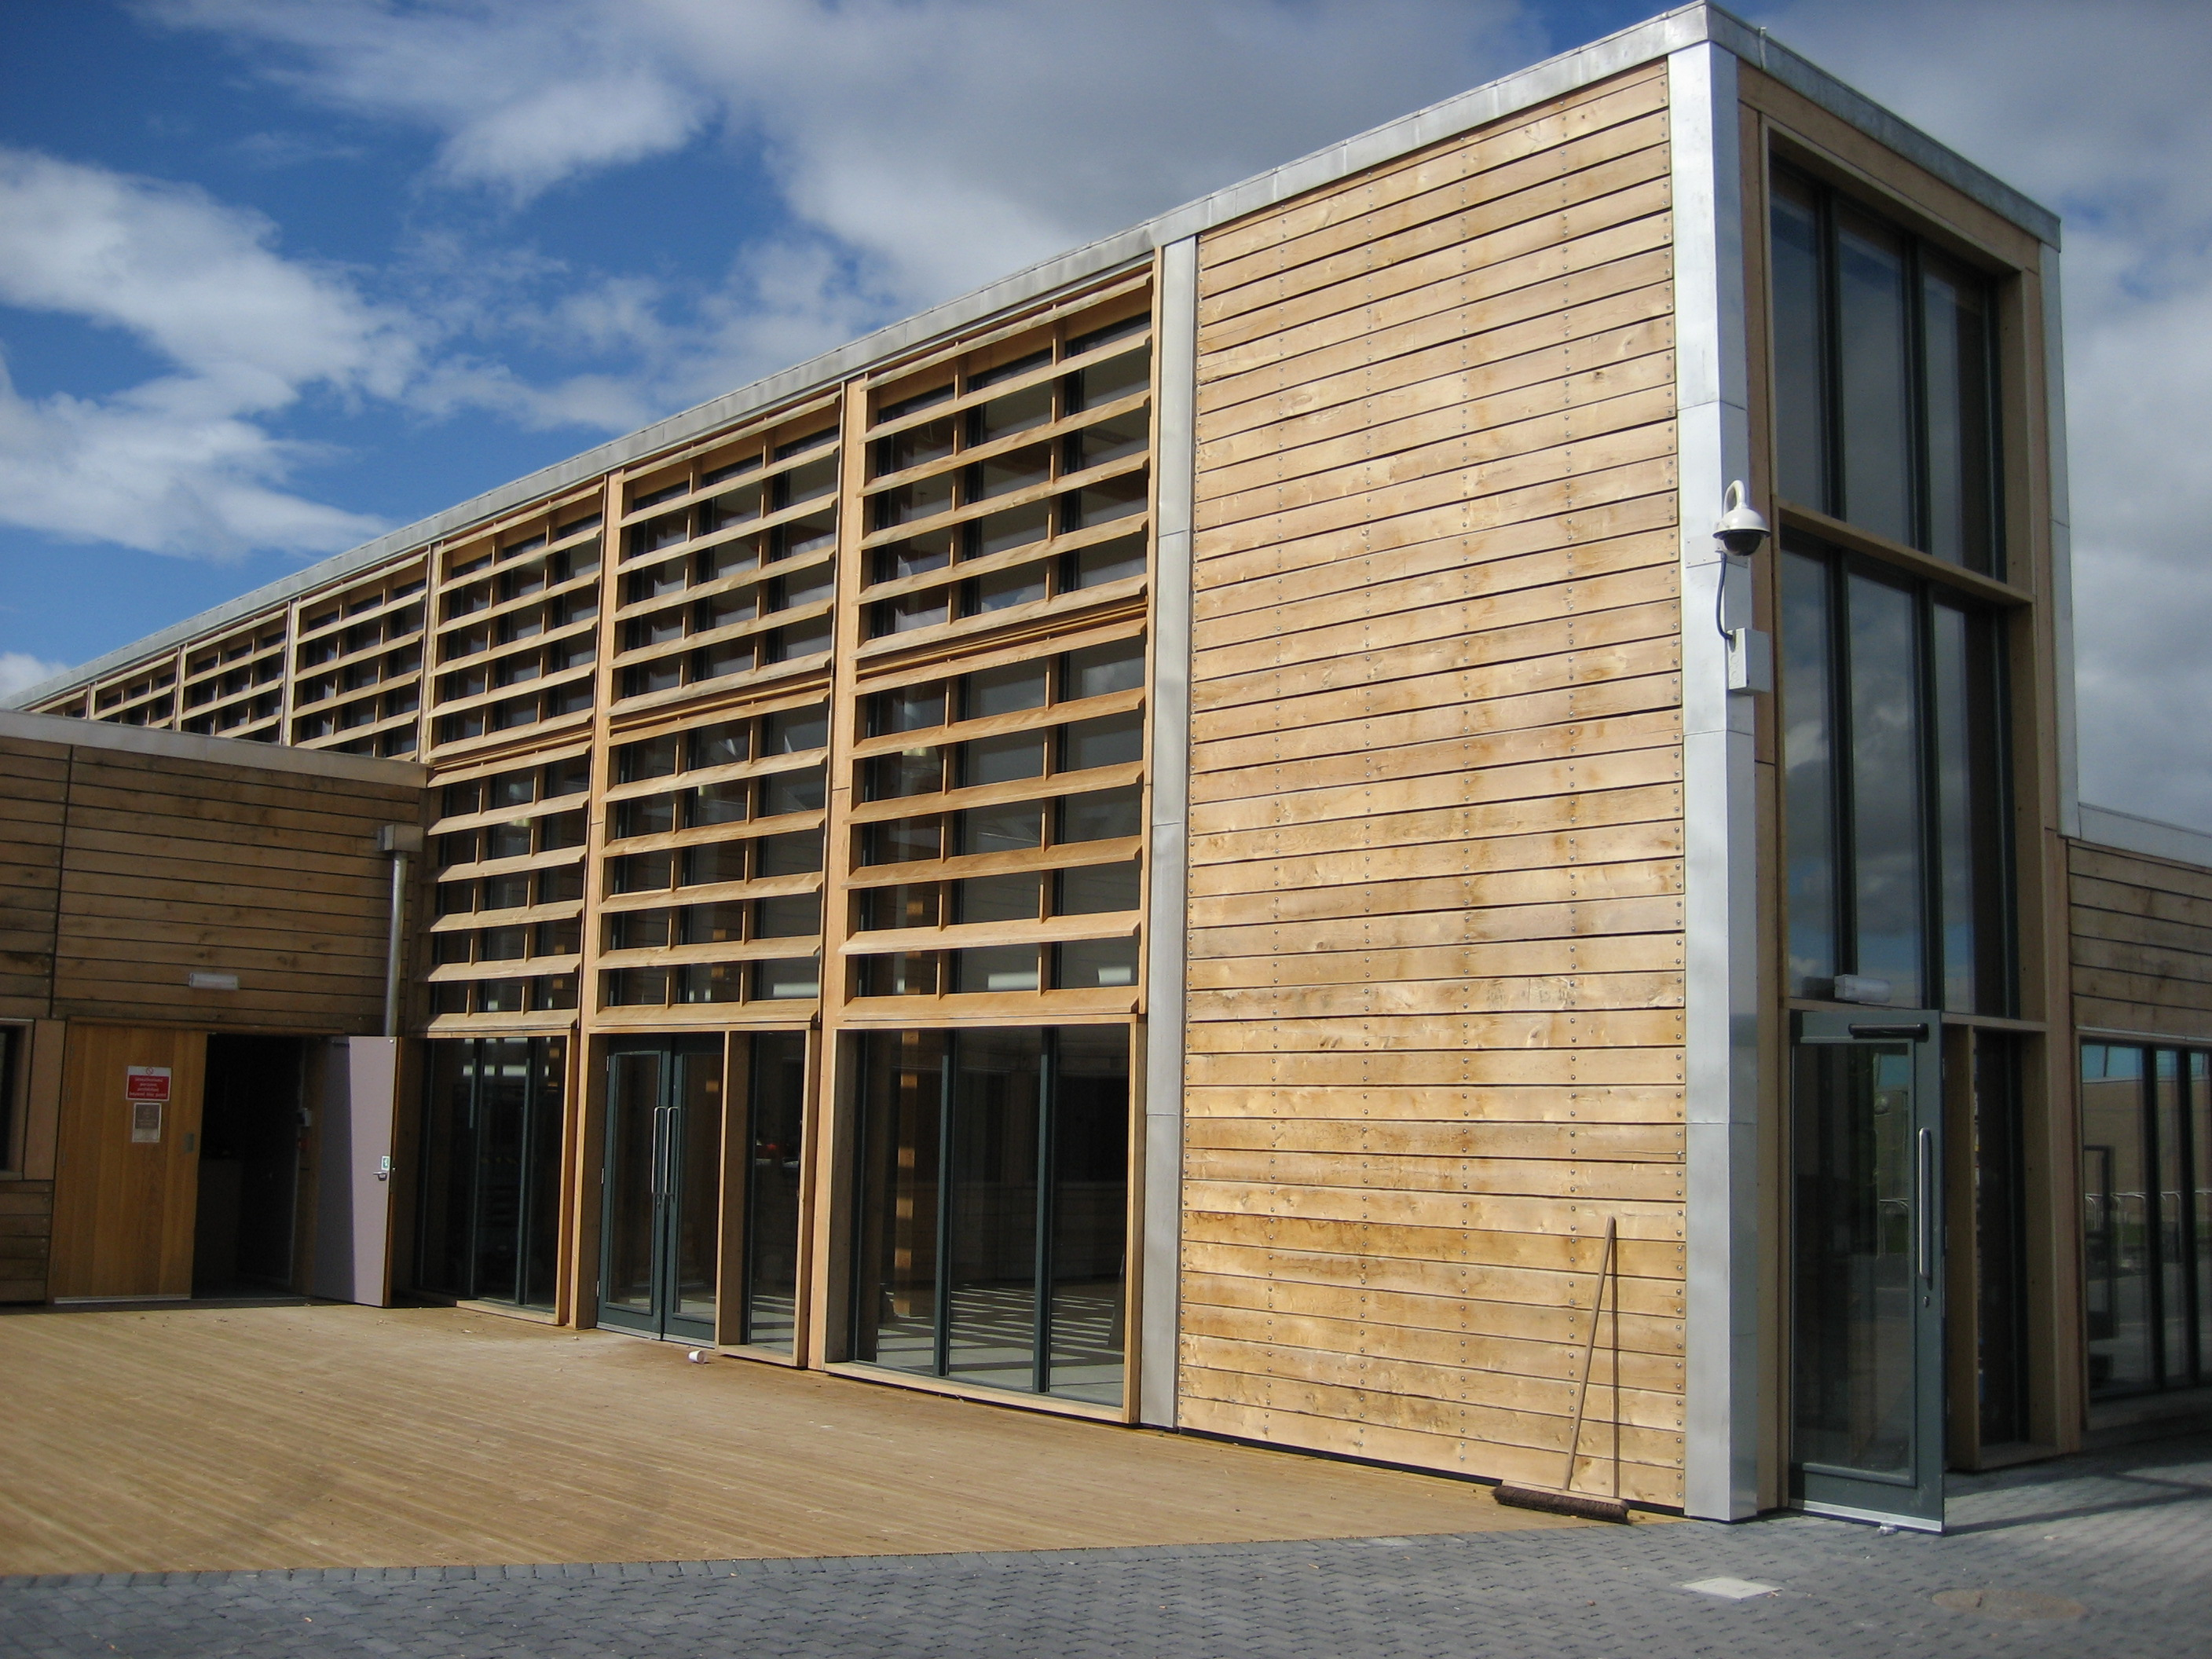 1000 Images About Materials Timber On Pinterest Timber Cladding Architects And Facades